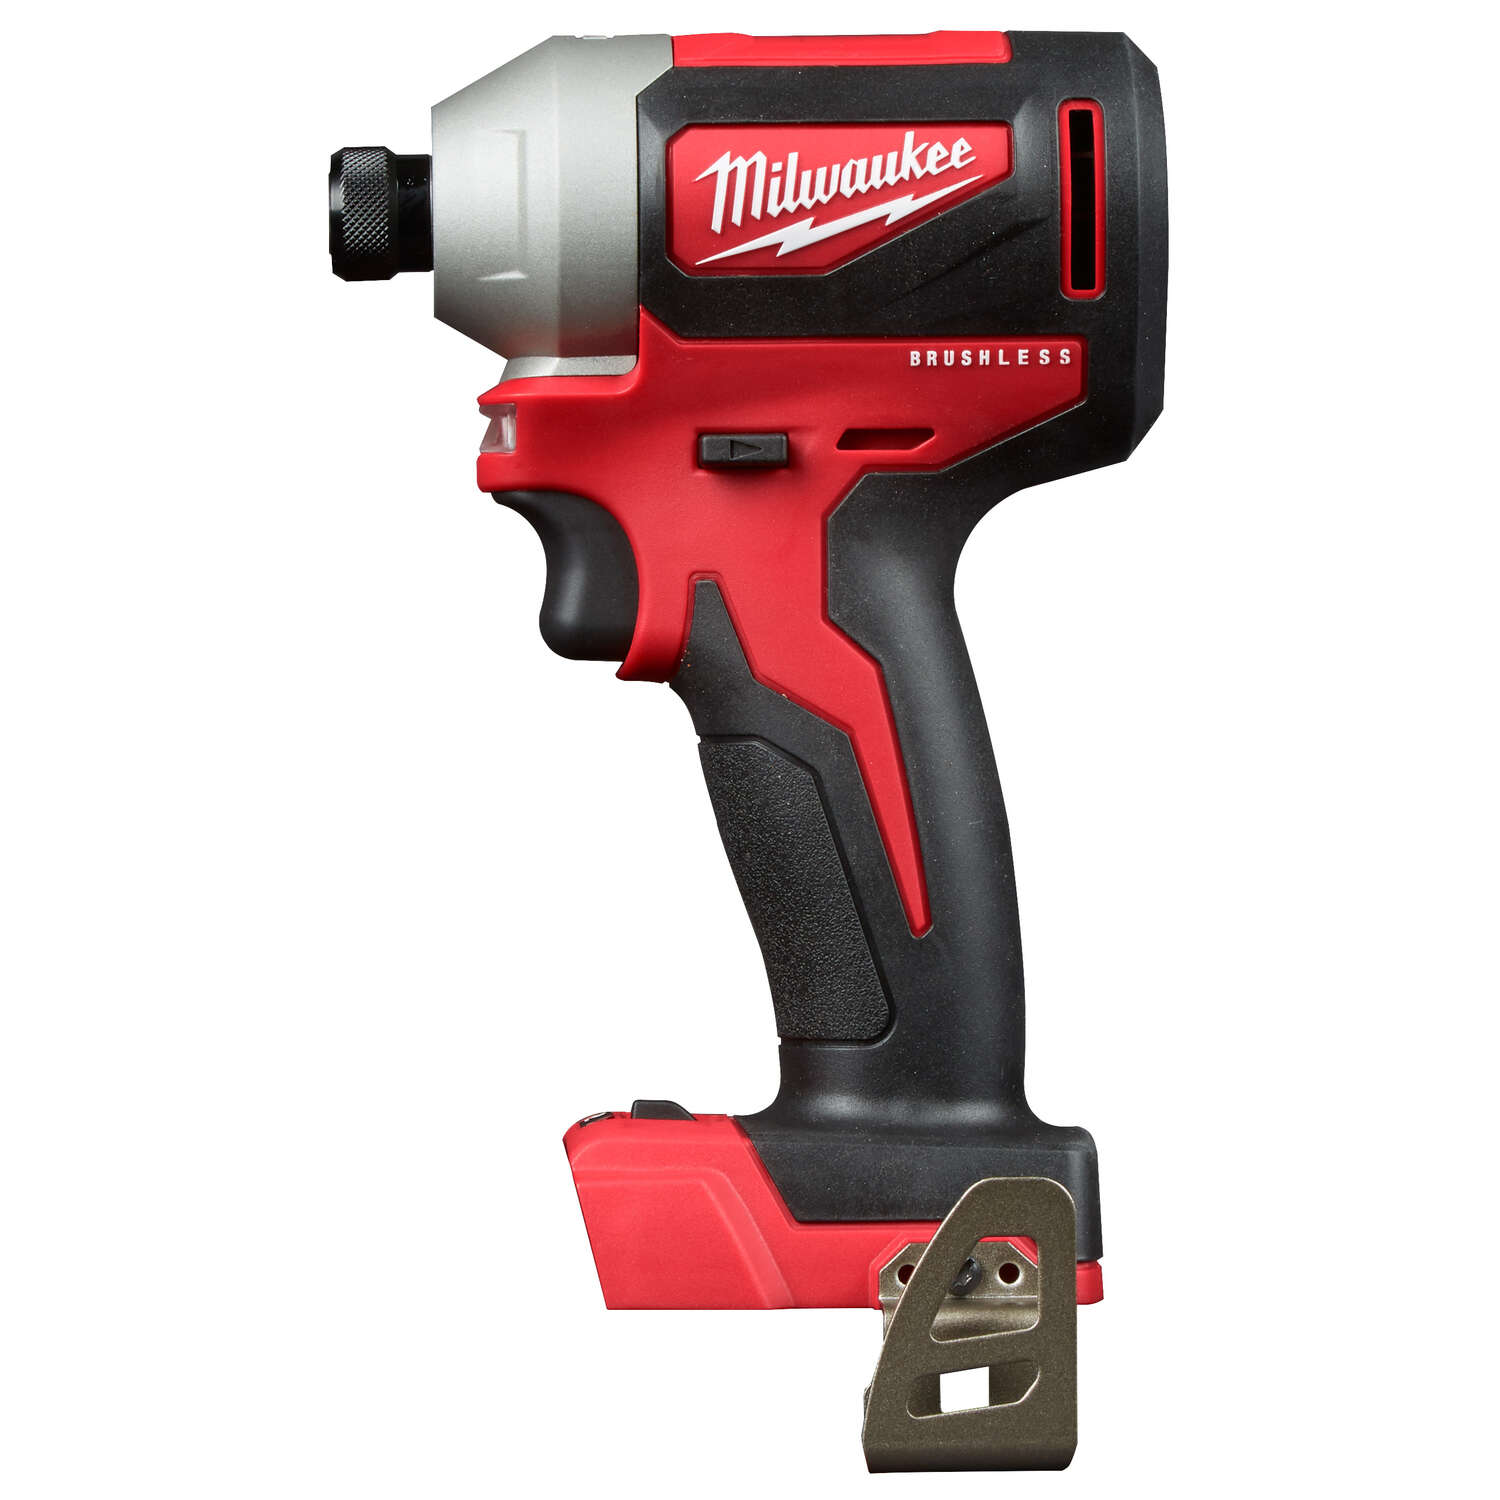 Milwaukee  M18  18 volt Cordless  Brushless  Compact Impact Driver  Bare Tool  1600 in-lb